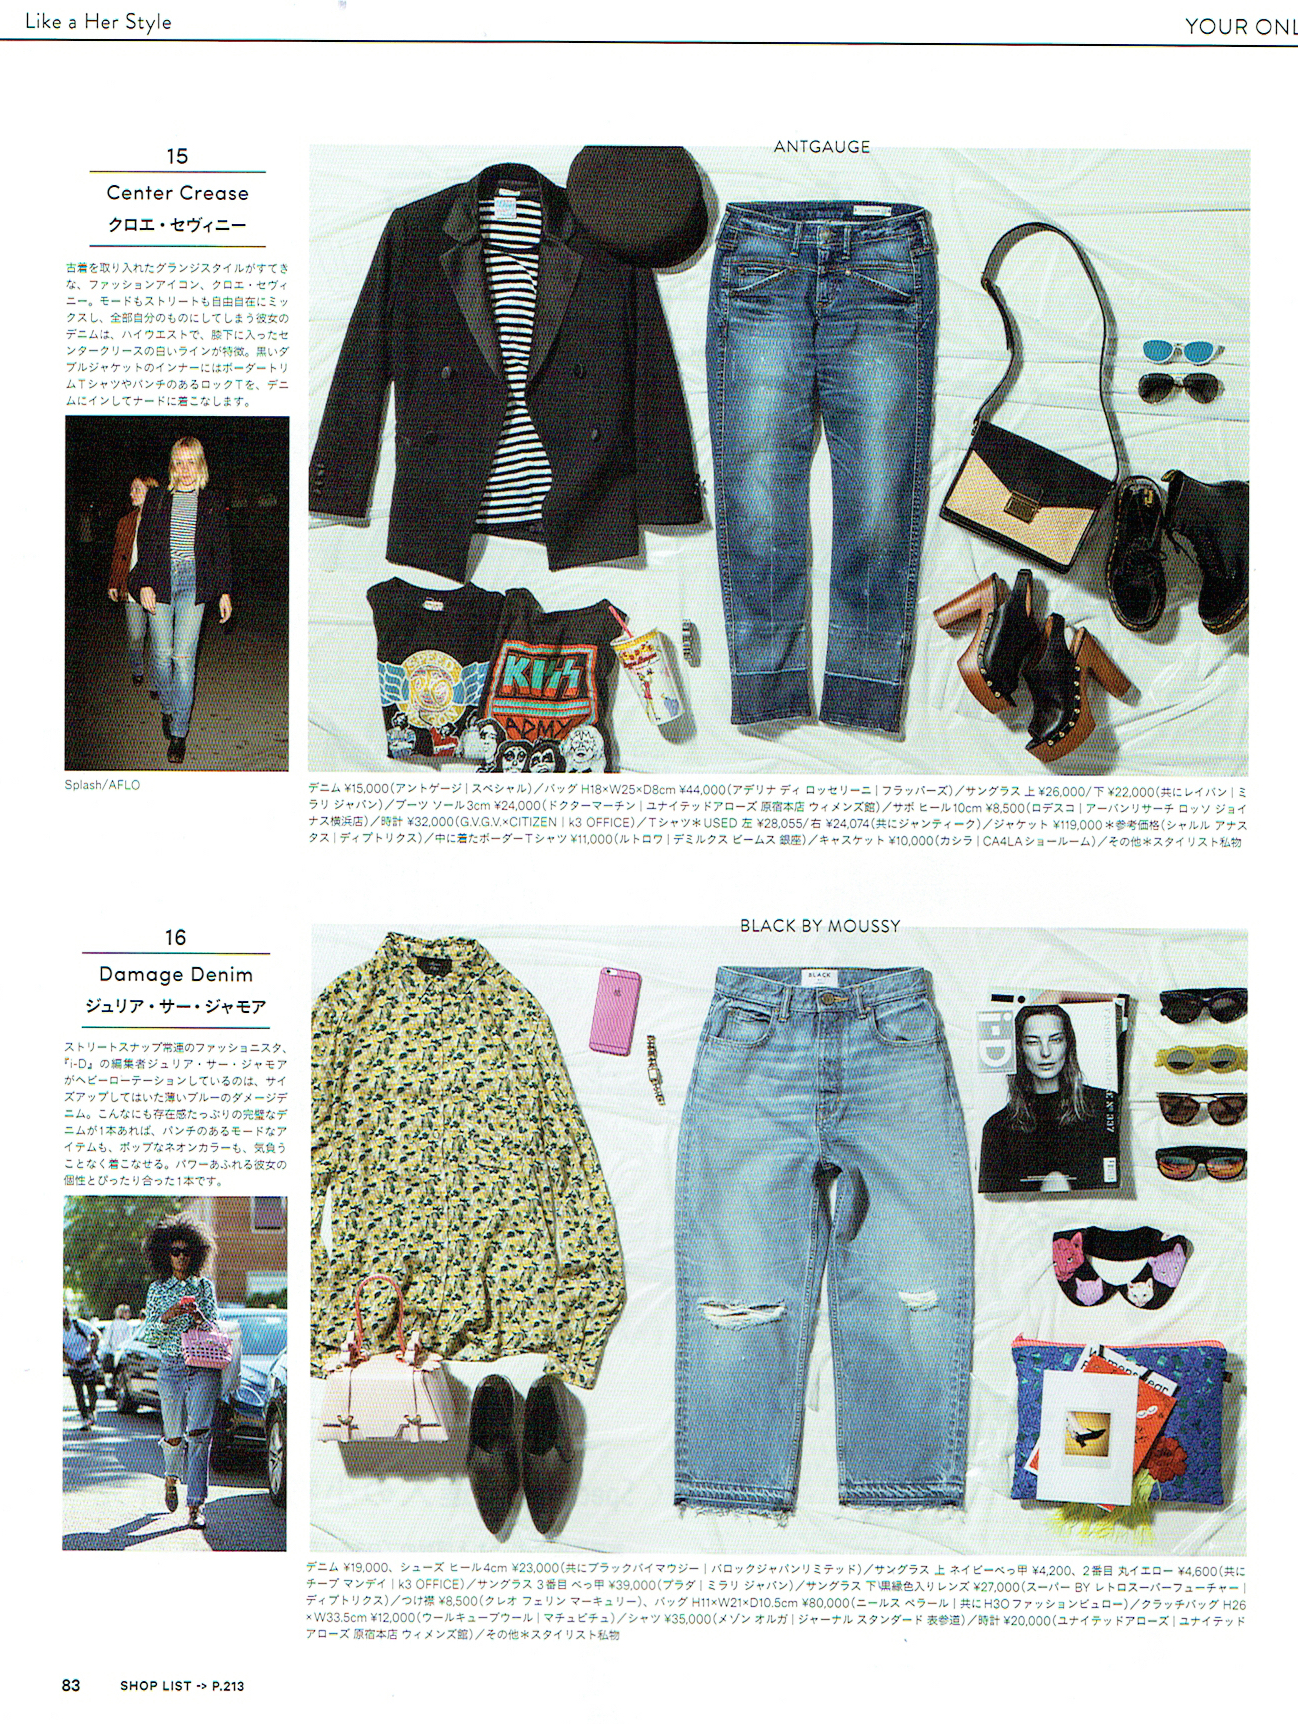 Cat Faces Silk Collar  as seen in Ginza Magazine's Damage Denim feature.